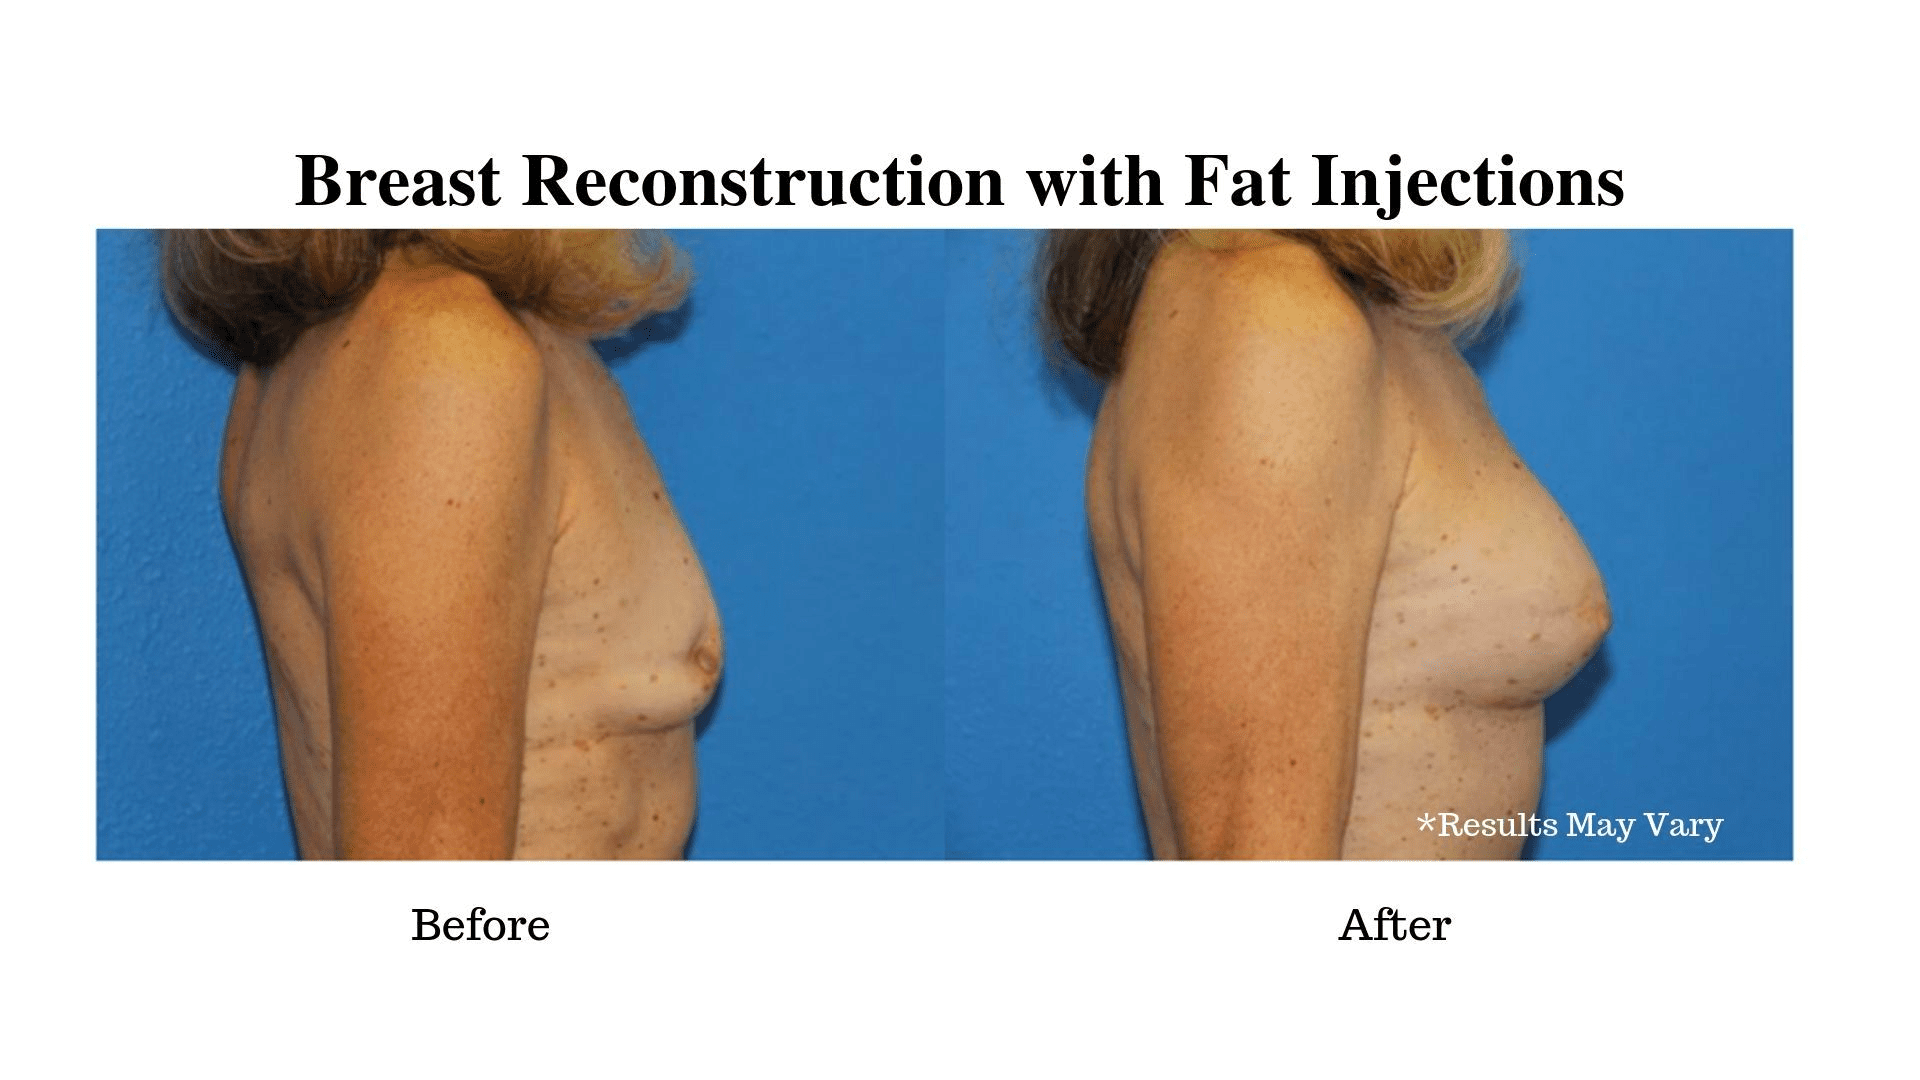 What Are the Benefits of Using Fat Injections for Breast Reconstruction?